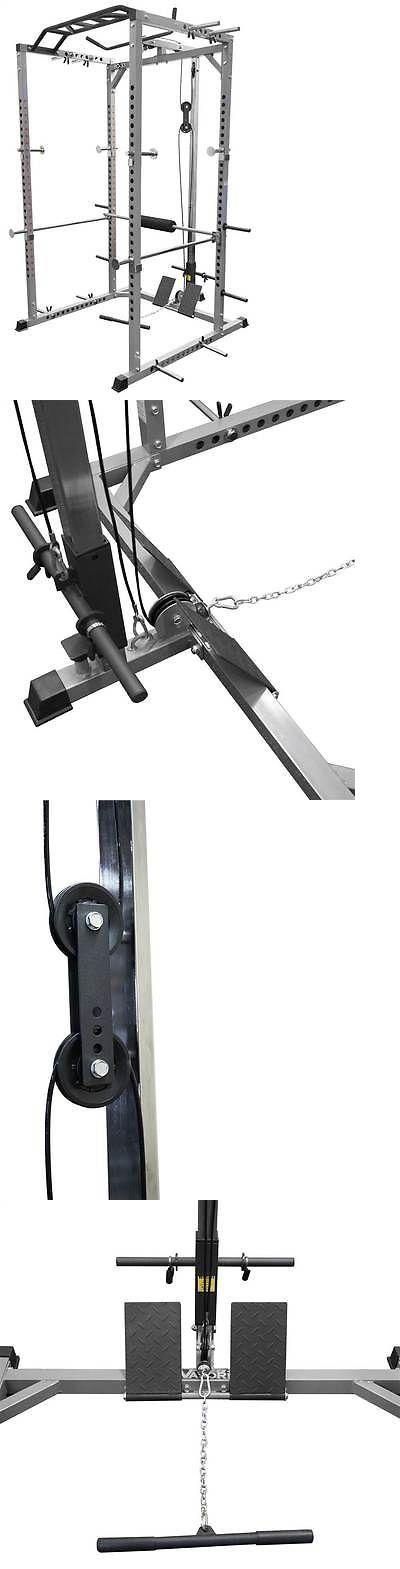 Home Gym Attachments 179813: Lat Pull For Heavy Duty Power Cage [Id ...